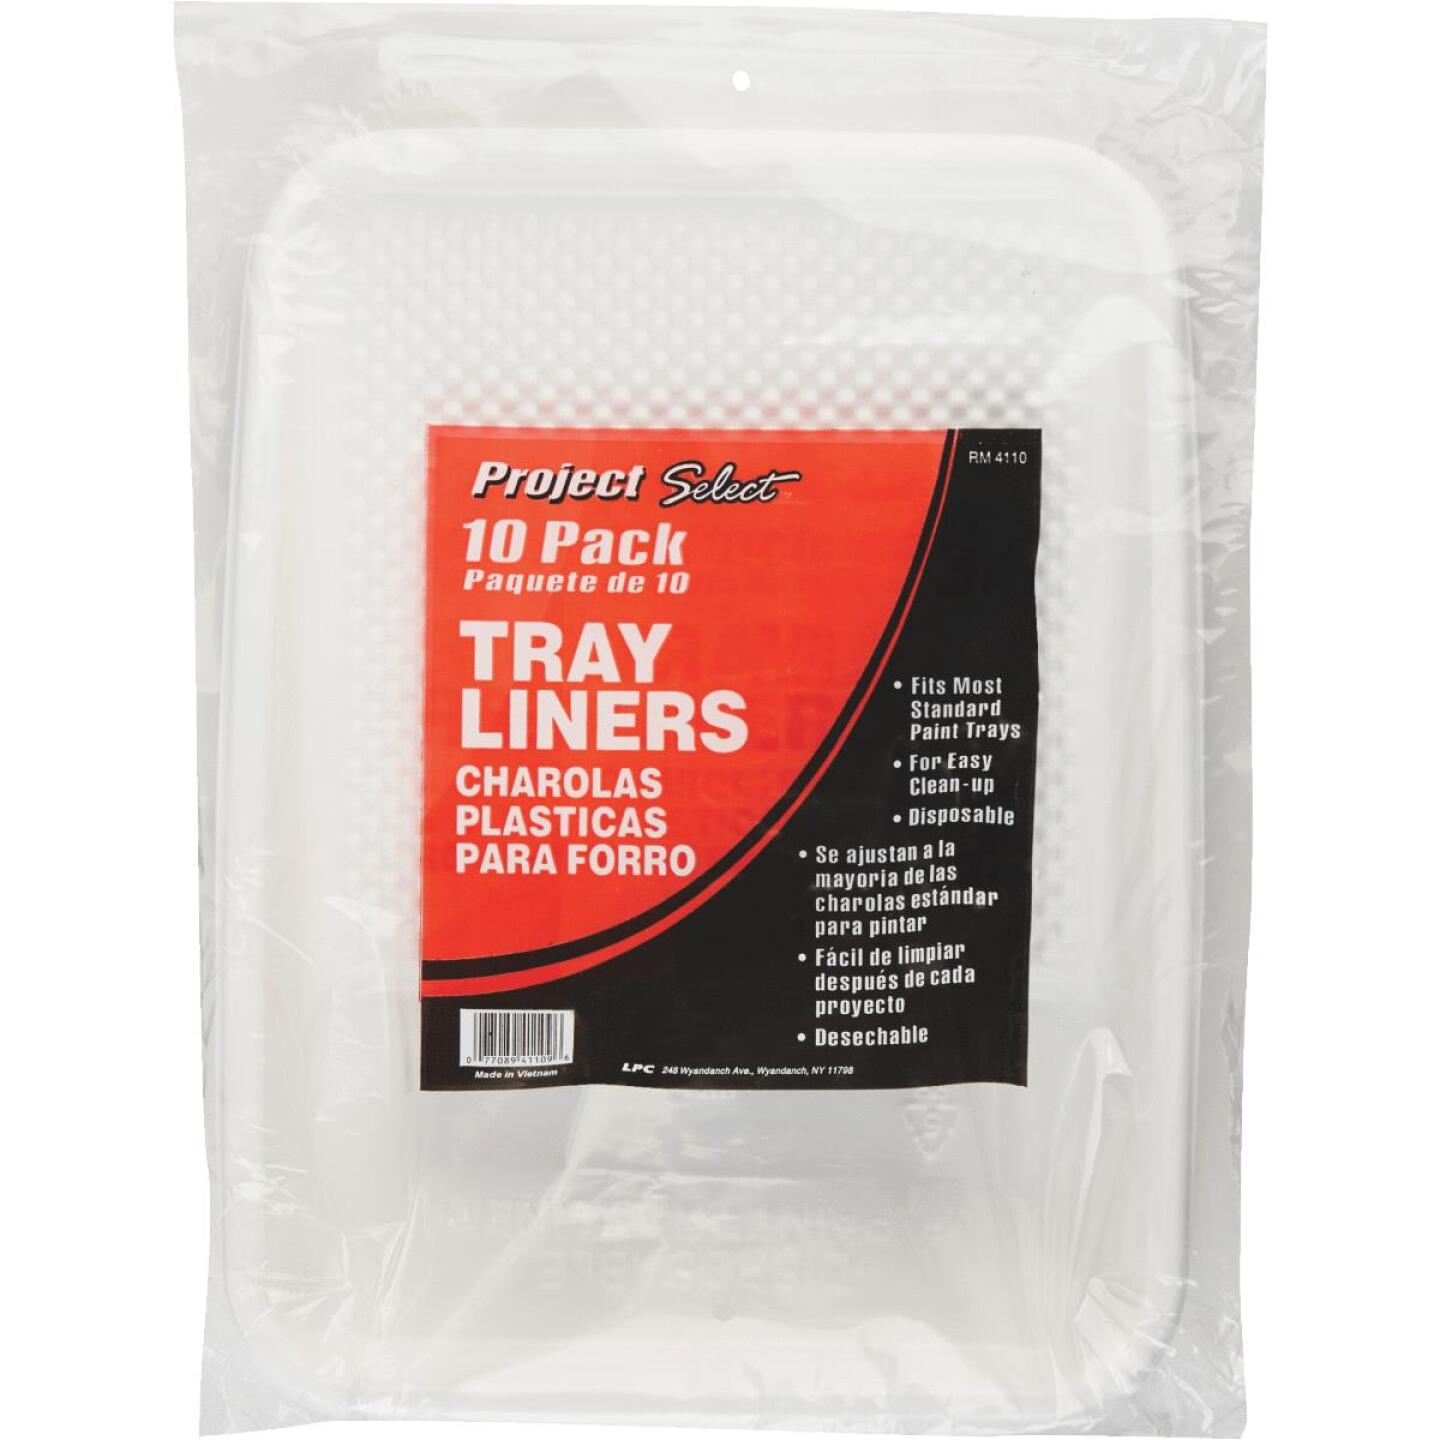 1 Quart Plastic Paint Tray Liner (10-Count) Image 2